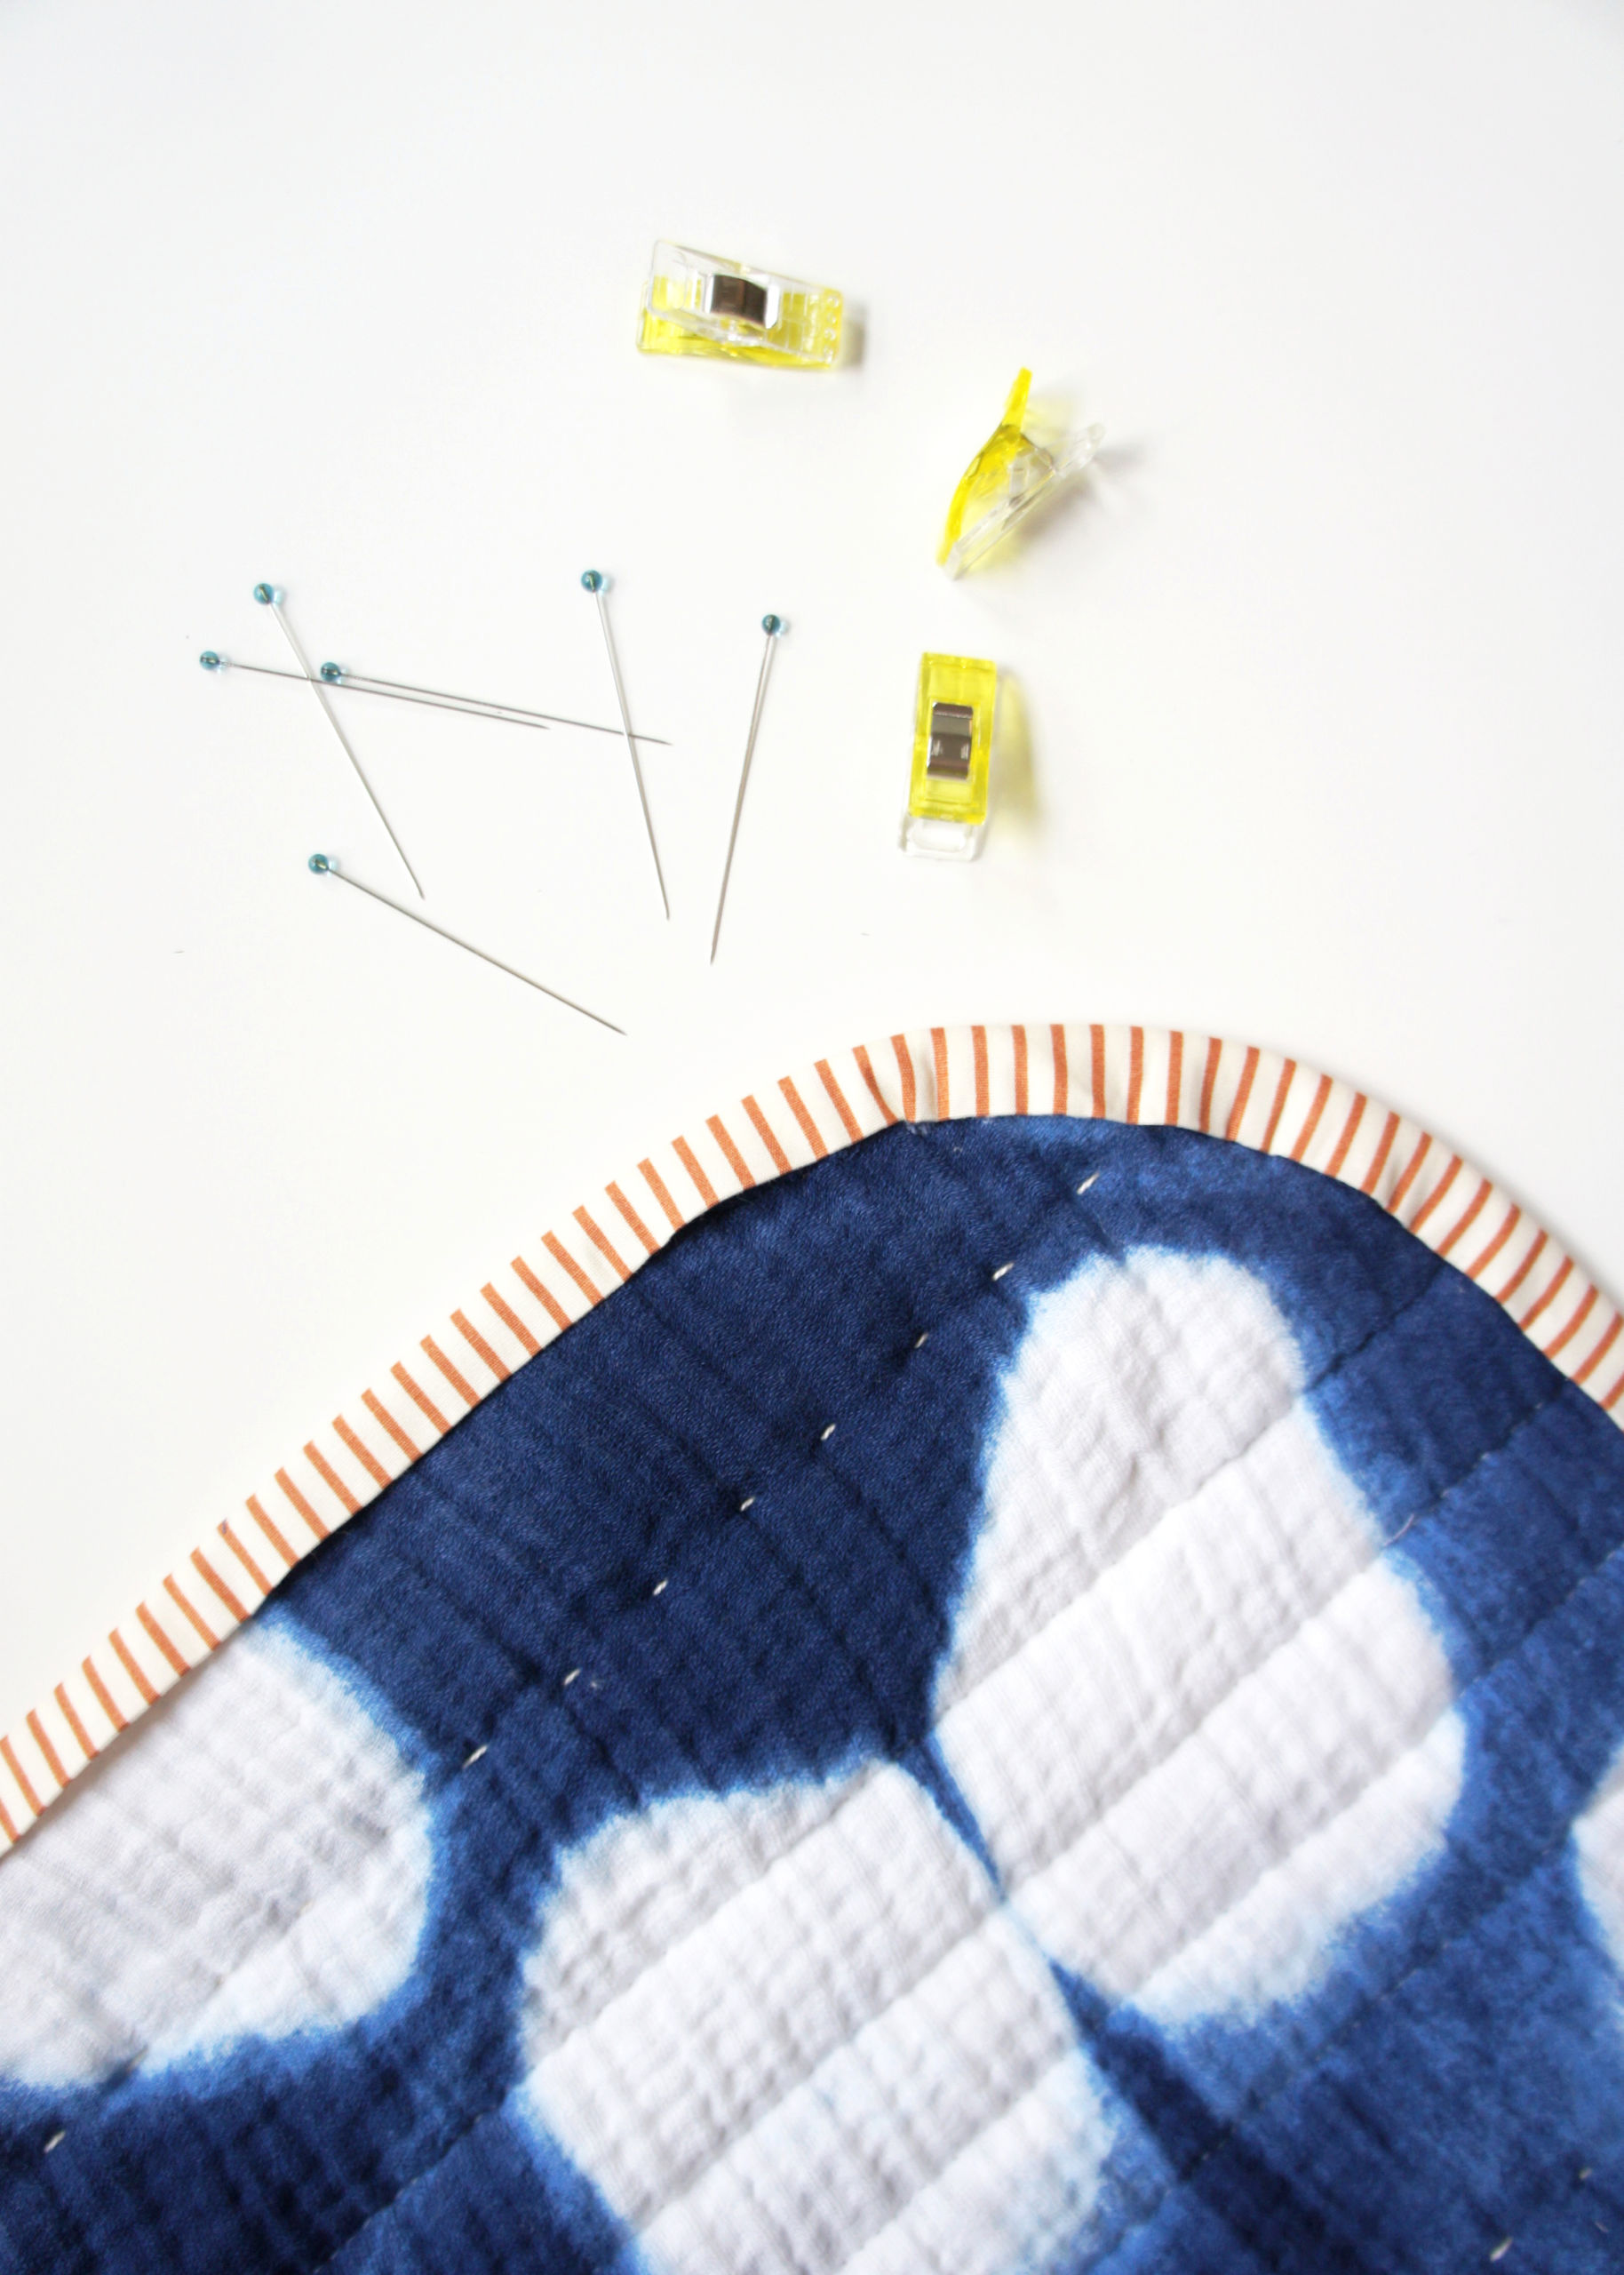 A step by step tutorial including photos and all the tools you need to get perfectly rounded quilt corners. Learn the best tips and tricks for rounding the corners of any quilt project and attaching a smooth binding. suzyquilts.com #sewingdiy #quilting